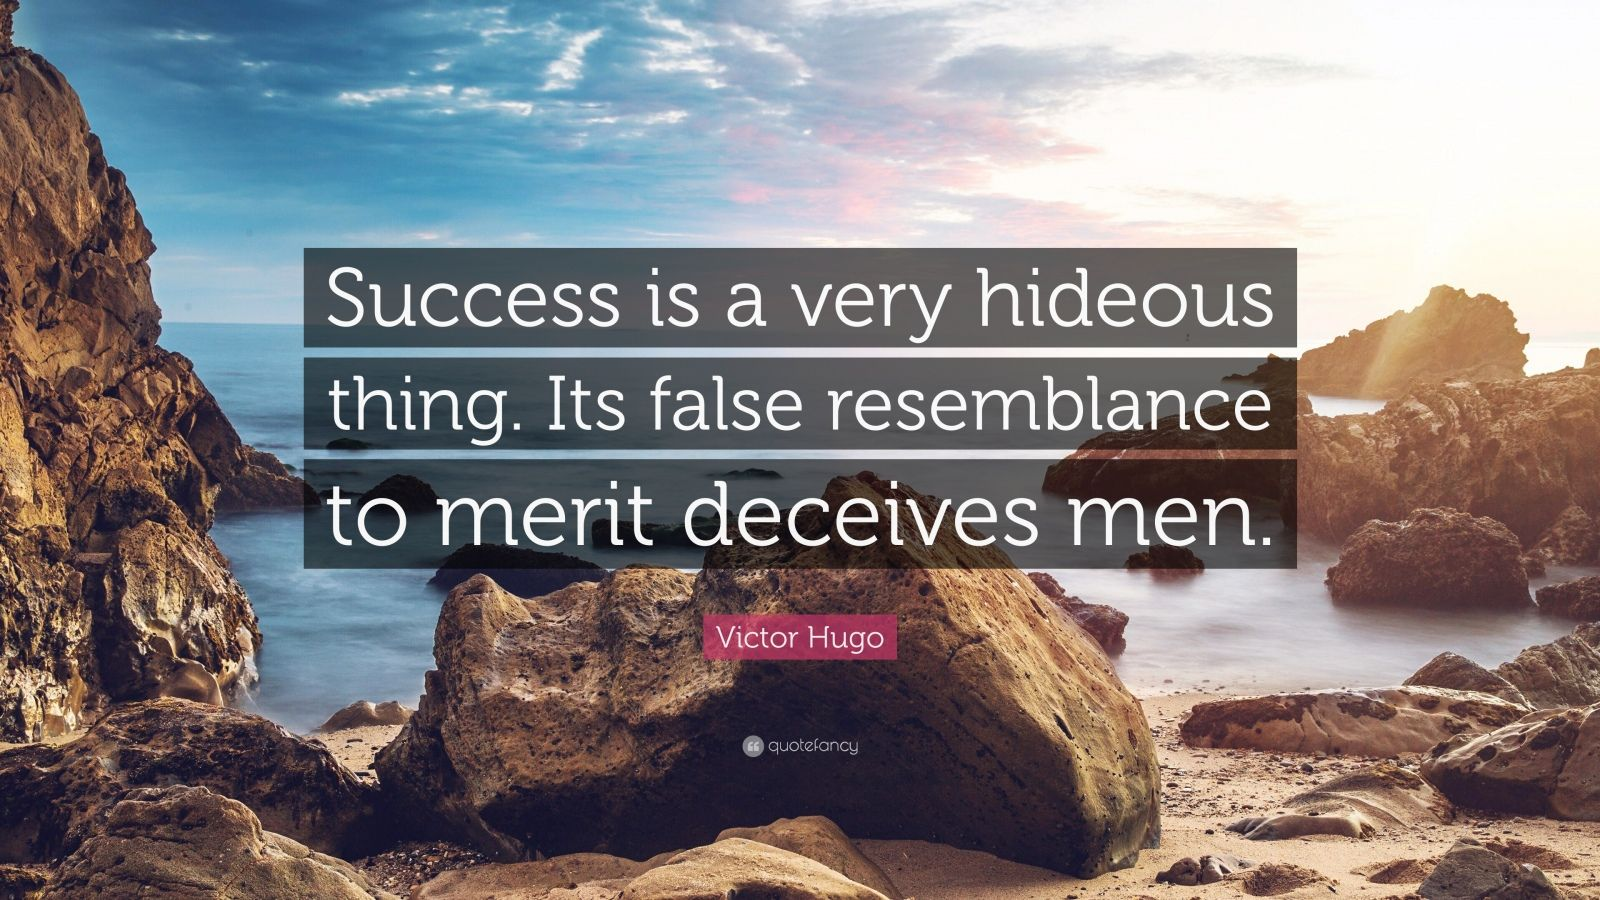 """Victor Hugo Quote: """"Success is a very hideous thing. Its false resemblance to merit deceives men."""""""